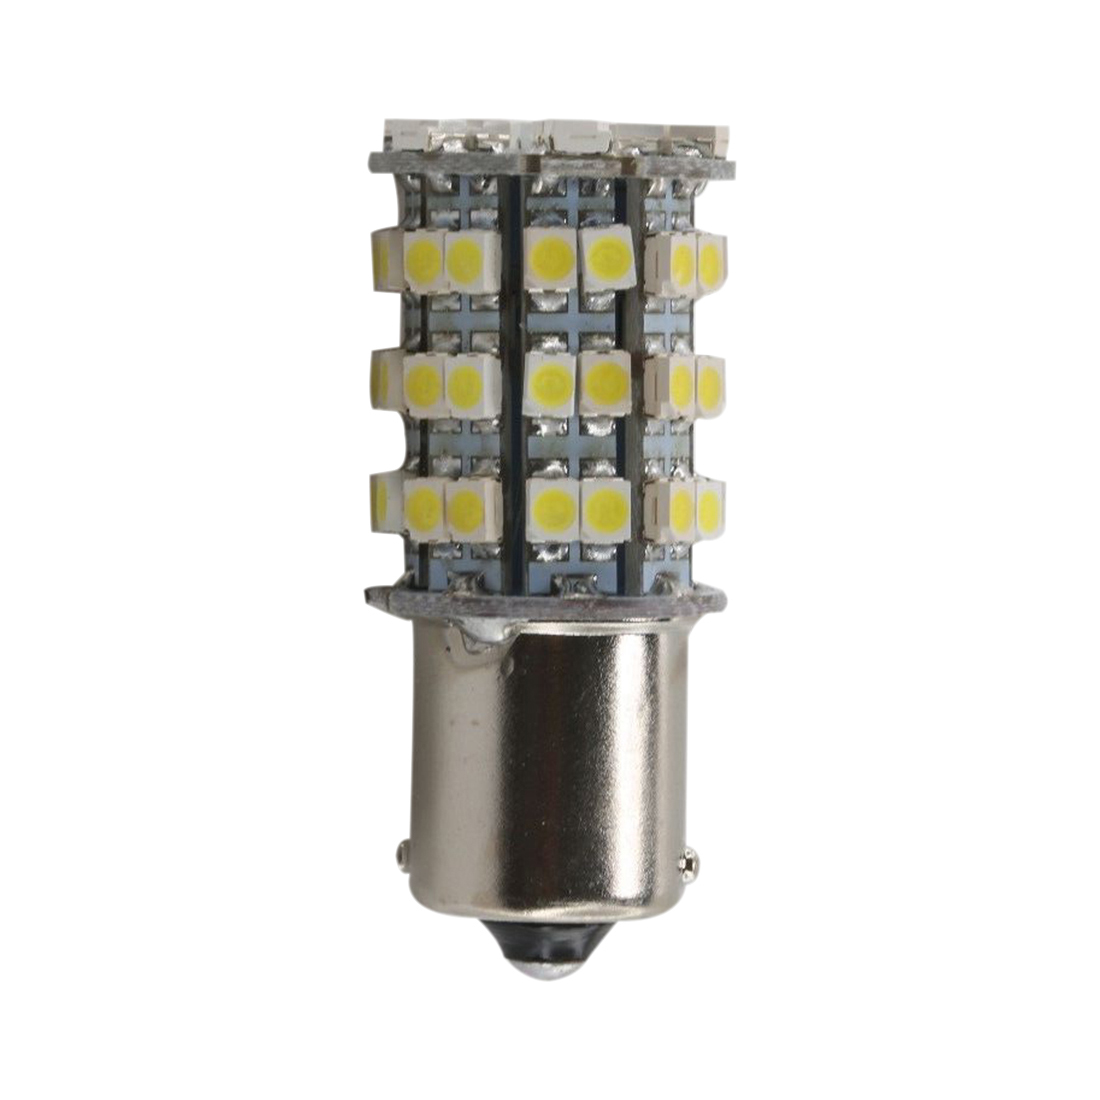 20 X 1156 BA15S RV Trailer Interior 12V LED Lights Bulbs 60 SMD 6000K Xenon White